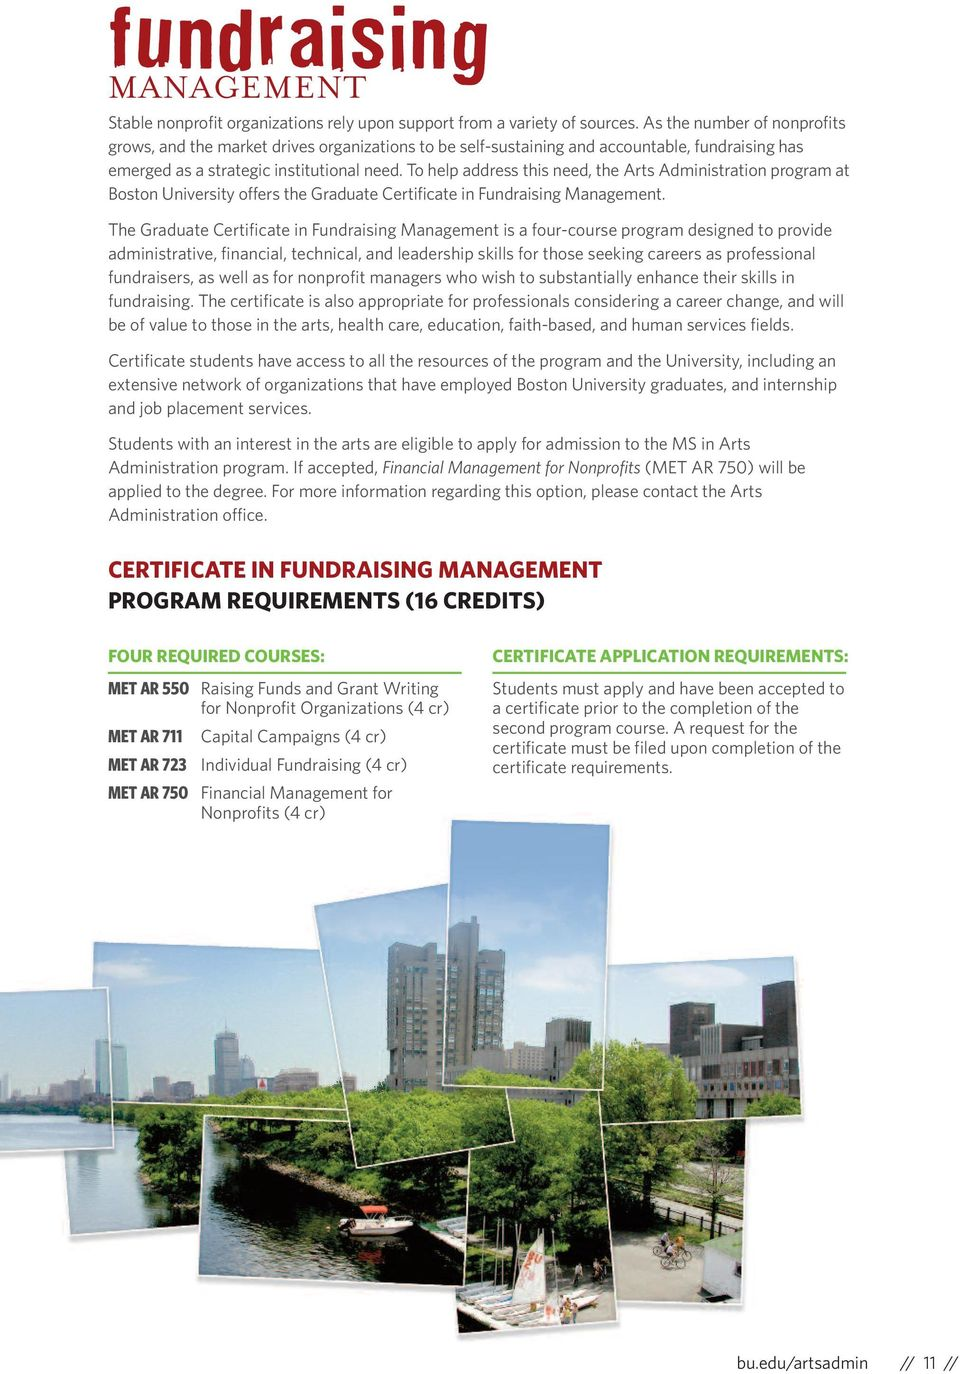 To help address this need, the Arts Administration program at Boston University offers the Graduate Certificate in Fundraising Management.